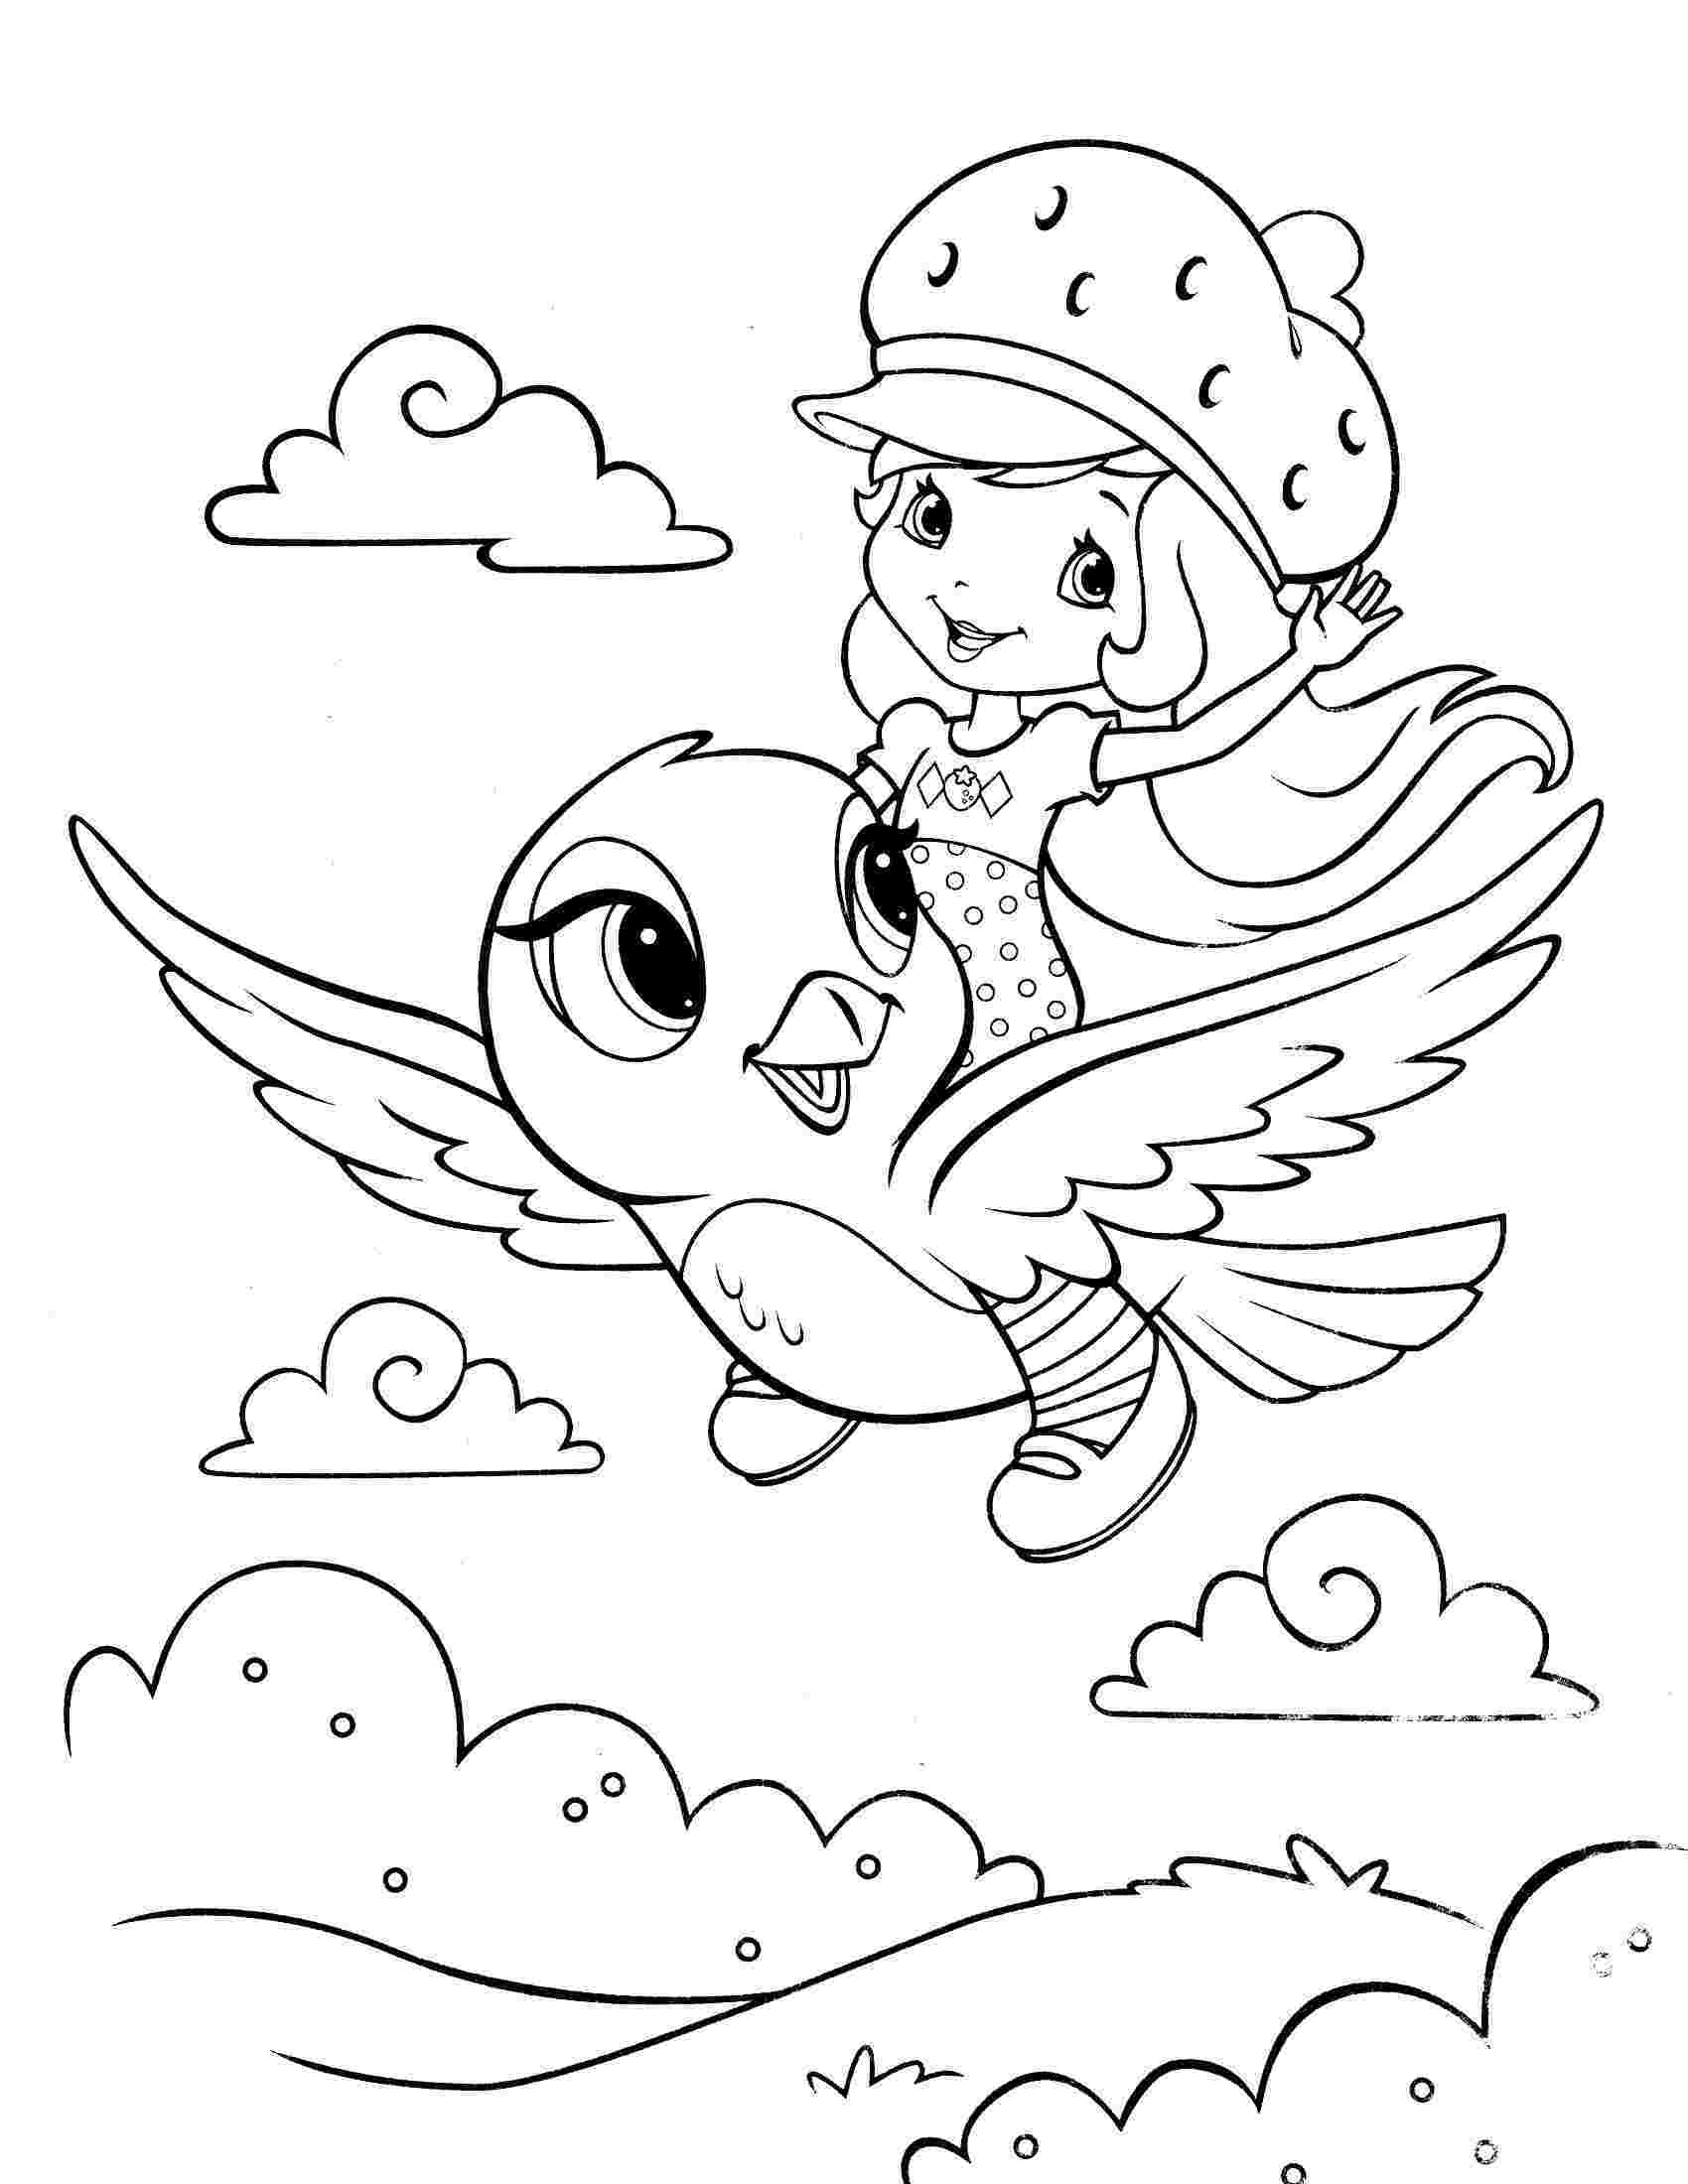 strawberry shortcake drawing pages strawberry shortcake coloring pages coloring pages to shortcake pages drawing strawberry